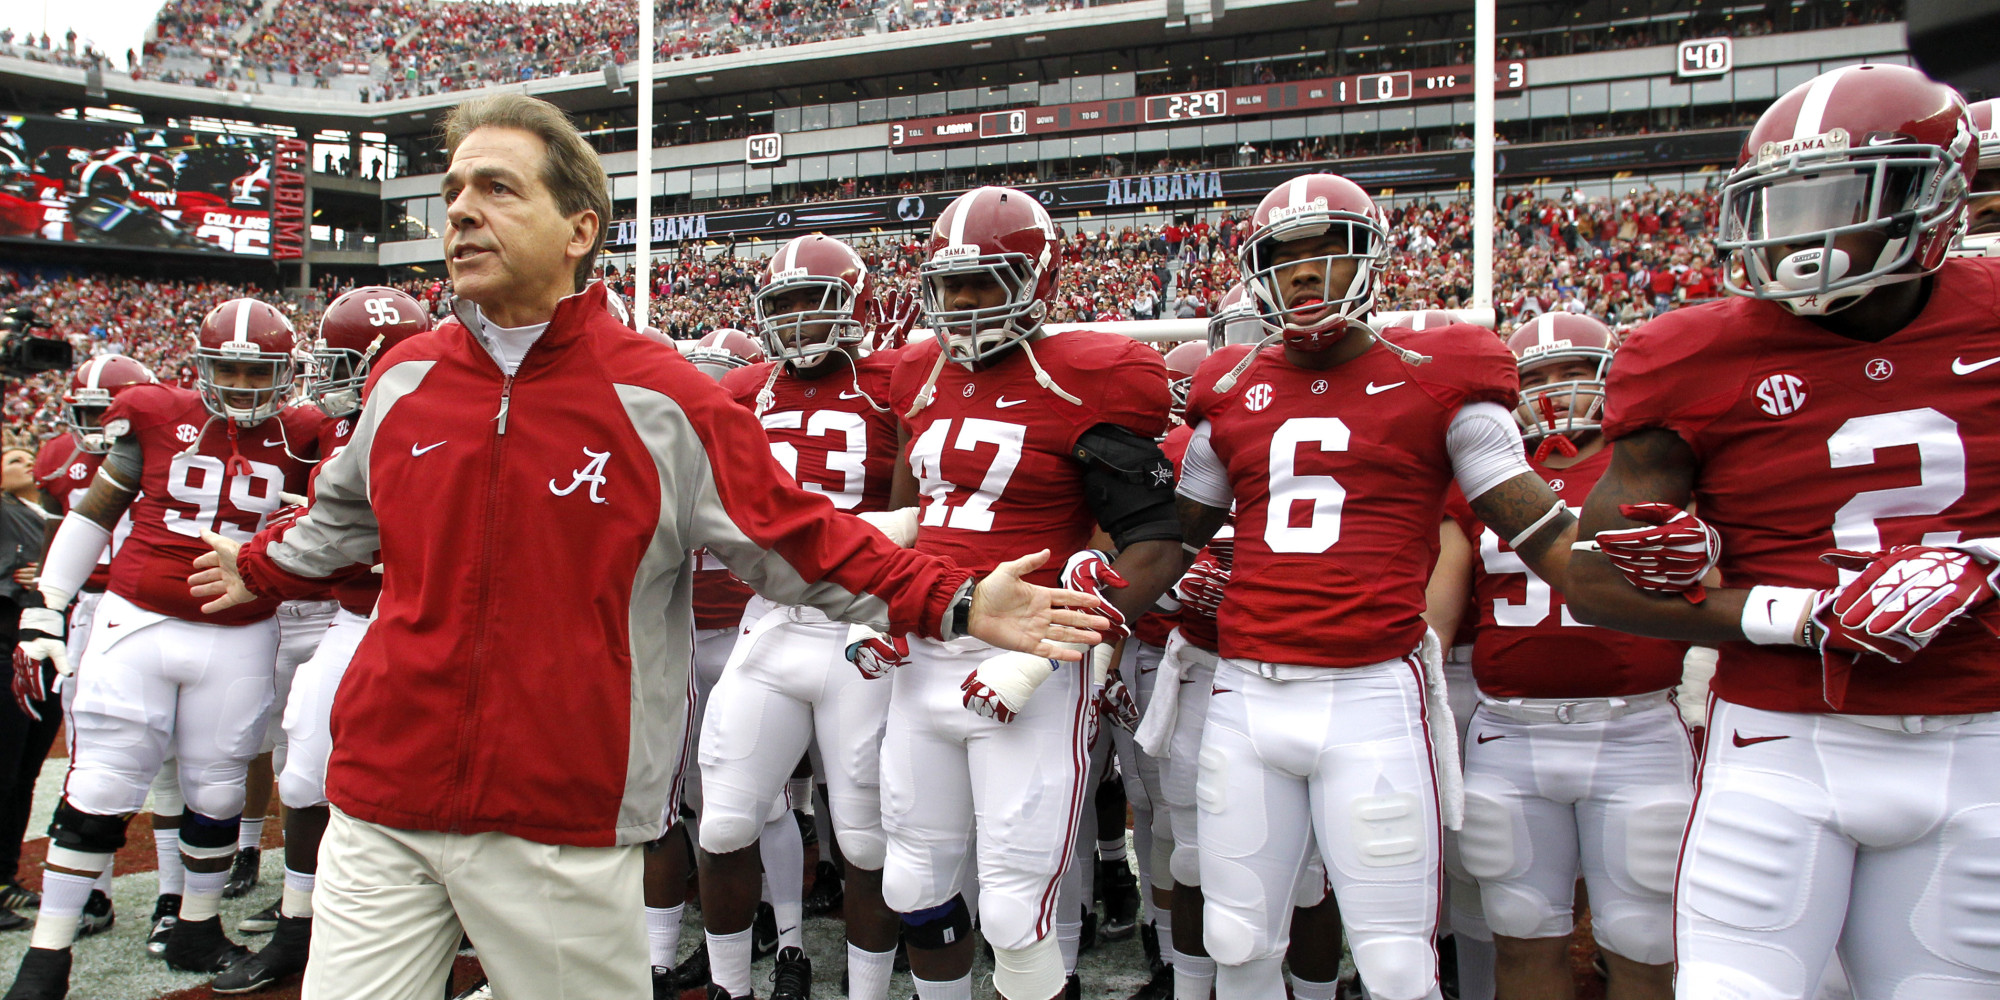 Nick Saban looking for his lucky number 7 this year.